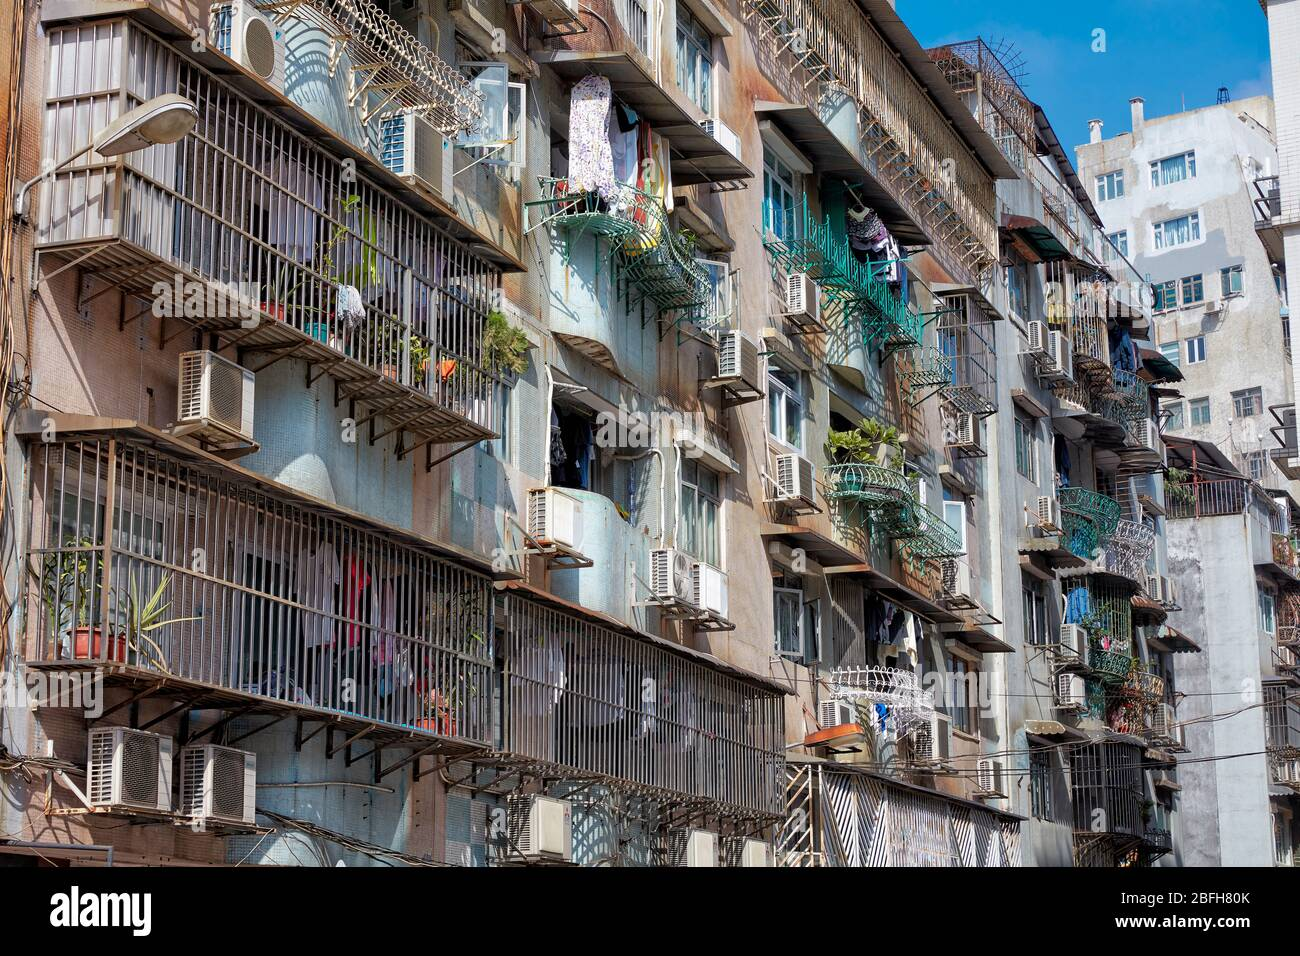 Facade of a multi-storey residential building with fenced balconies. Macau, China. Stock Photo